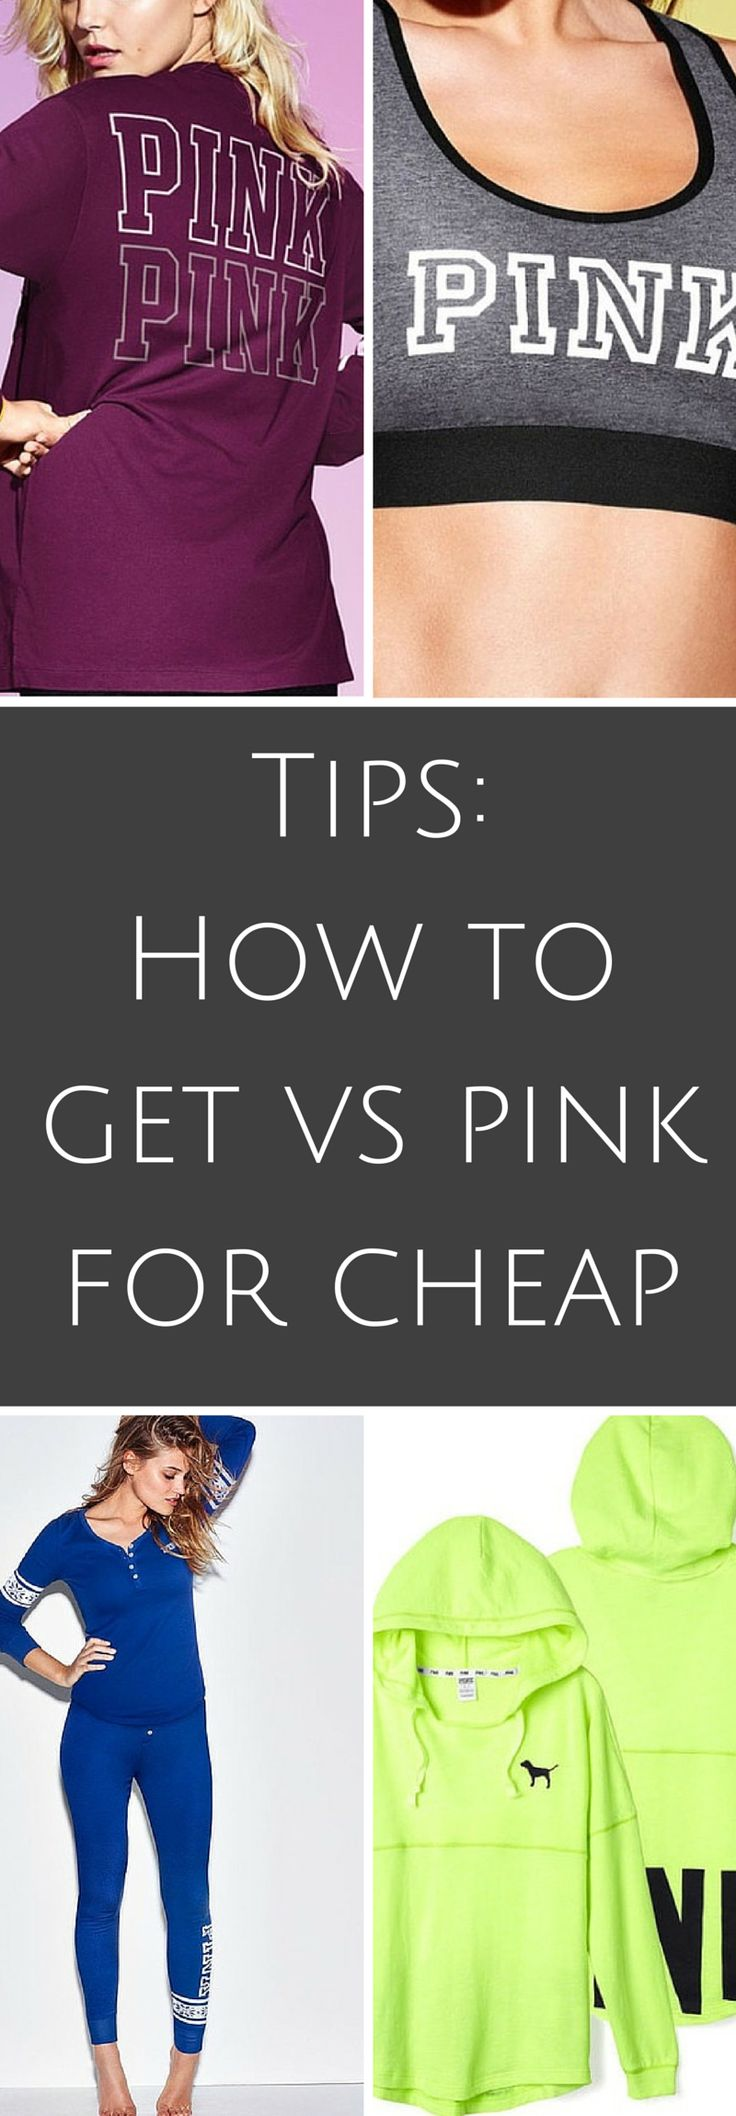 Get this look at up to 70% off! Shop VS Pink, Hunter, The North Face, MAC and many more! Click image to get the free app now.